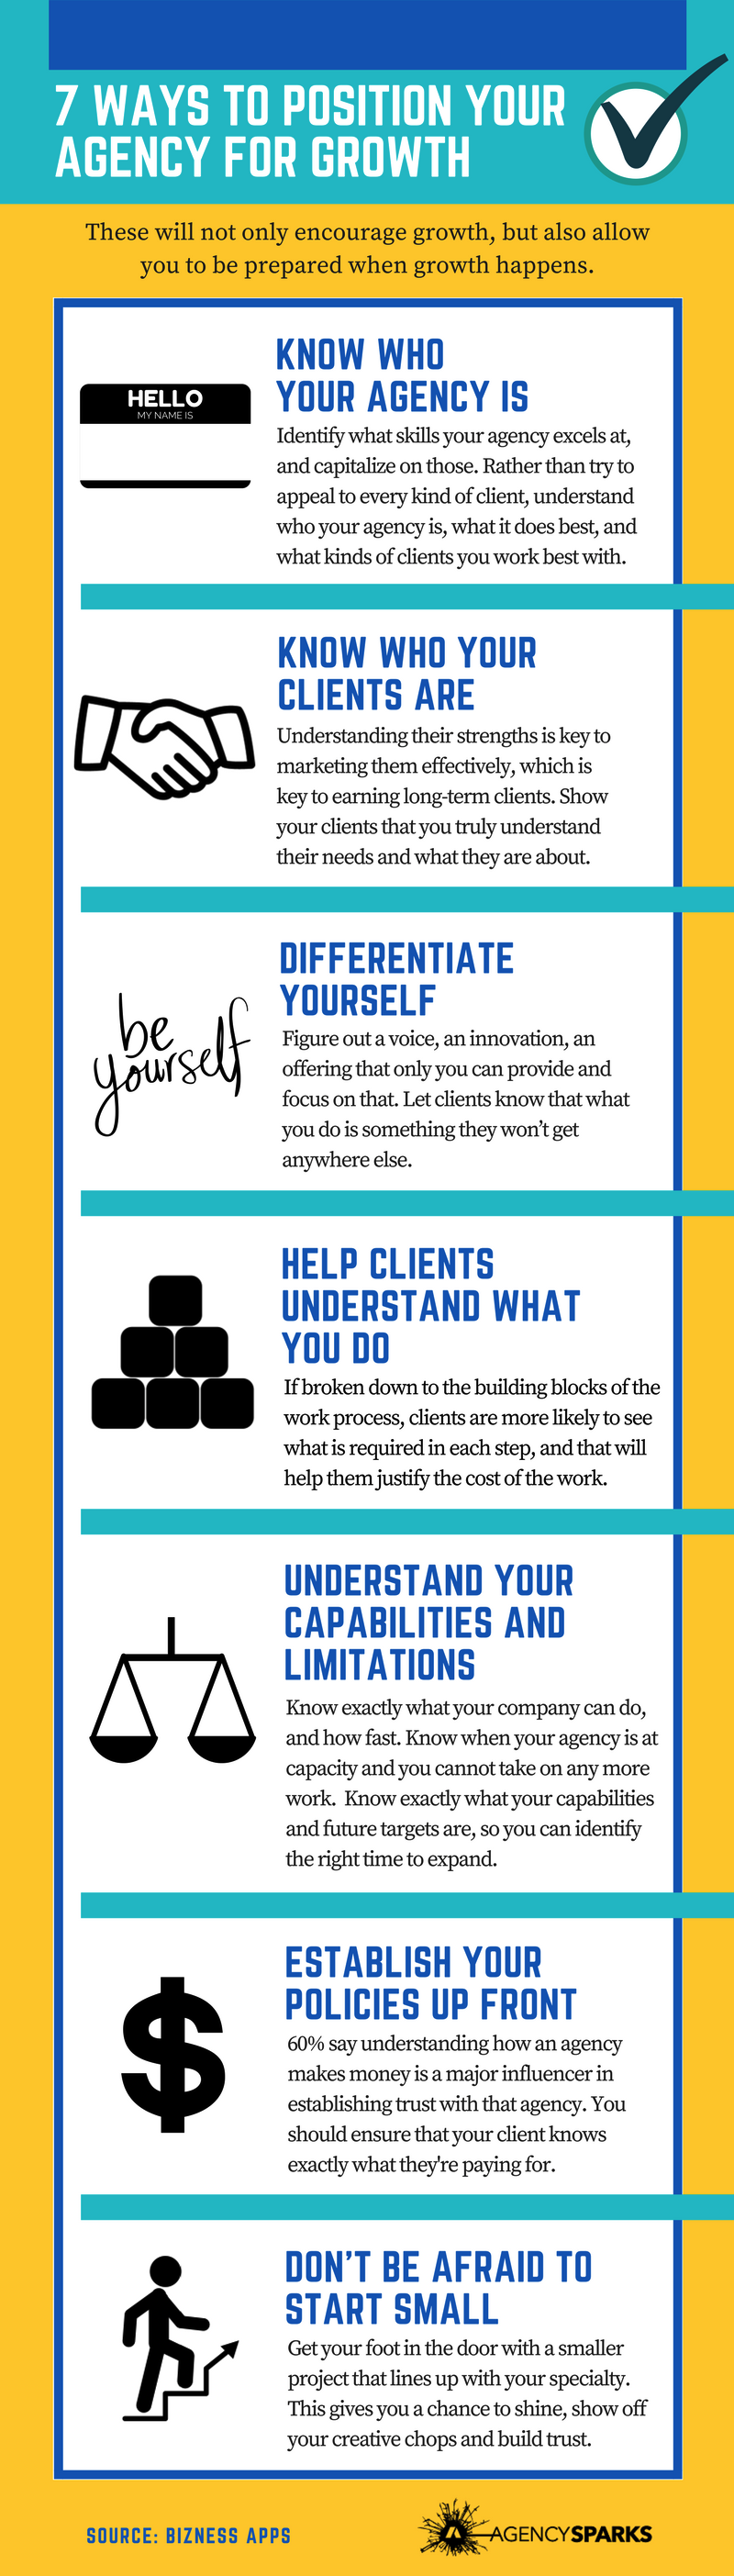 Growth doesn't happen accidentally; it comes with hard work, determination, and the right positioning. Not preparing correctly for growth can end up hurting you in the long run. If you are looking to grow your agency in any way, whether it's the skills of your employees, what your agency offers, or overall size, these 7 tips will help prepare you for when growth happens.     The 7 ways to position your agency for growth include:     Know who your agency is    Know who your clients are    Differentiate yourself    Help clients understand what you do    Understand your capabilities and limitations    Establish your policies up front    Don't be afraid to start small    Growth takes time and can be measured and managed. If you focus on your current client relationships and honing in on what you do best, growth will happen naturally. And when it does, the tips above will allow you to be ready to take advantage of that growth.